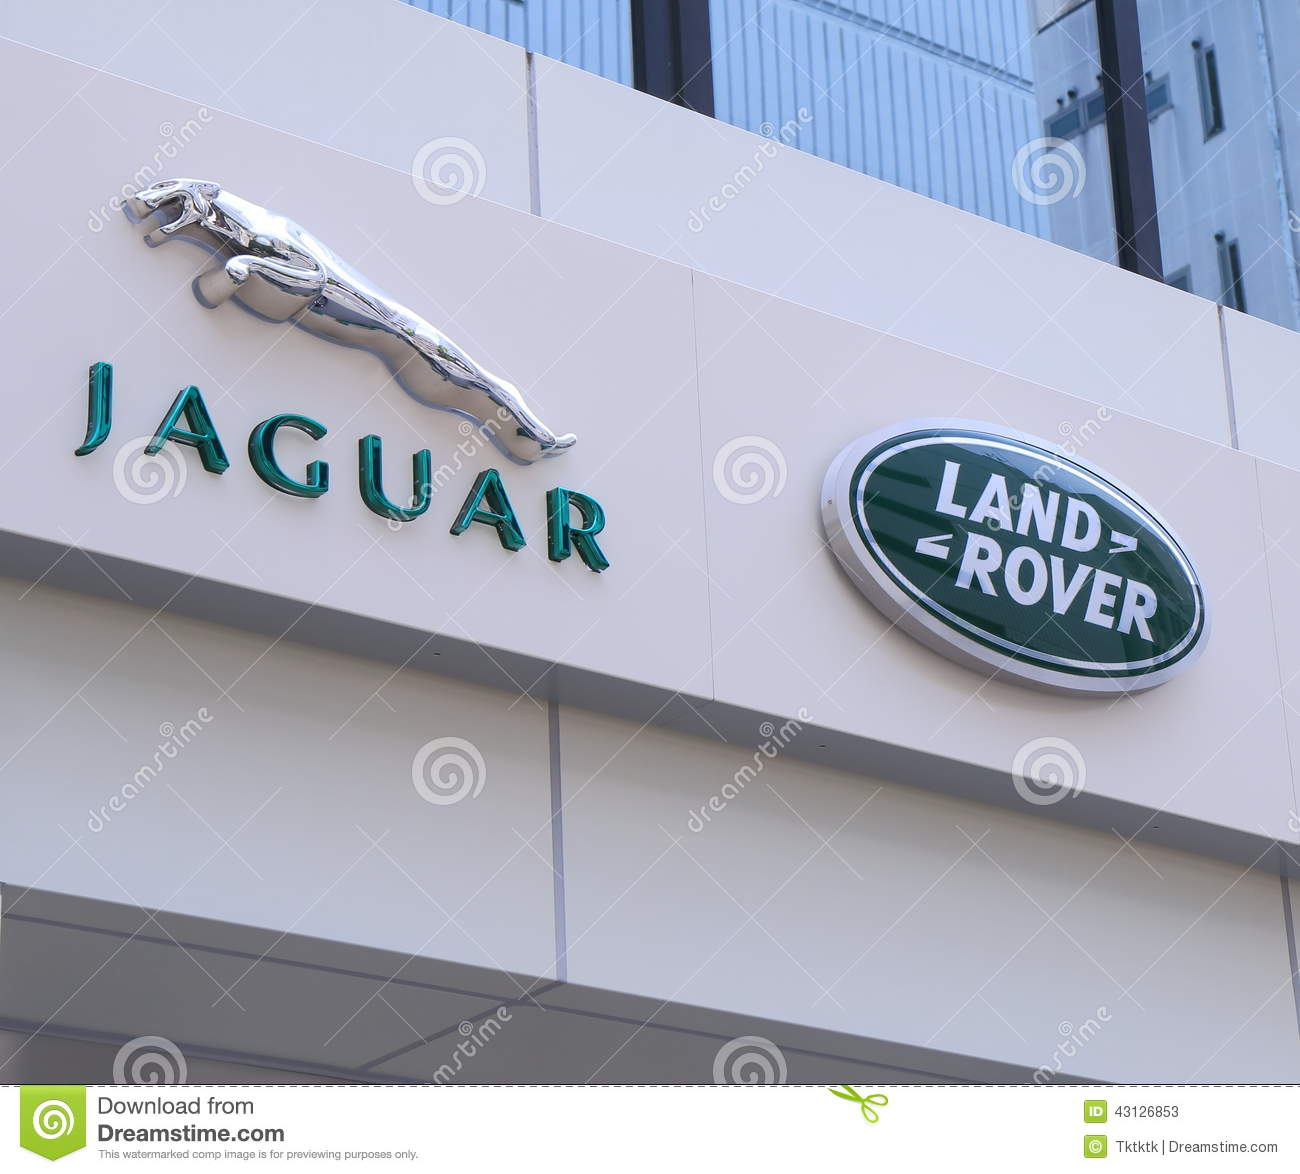 Sacramento California Land Rover Dealership: Land Rover Defender Used To Tow The Boat Carriage At The